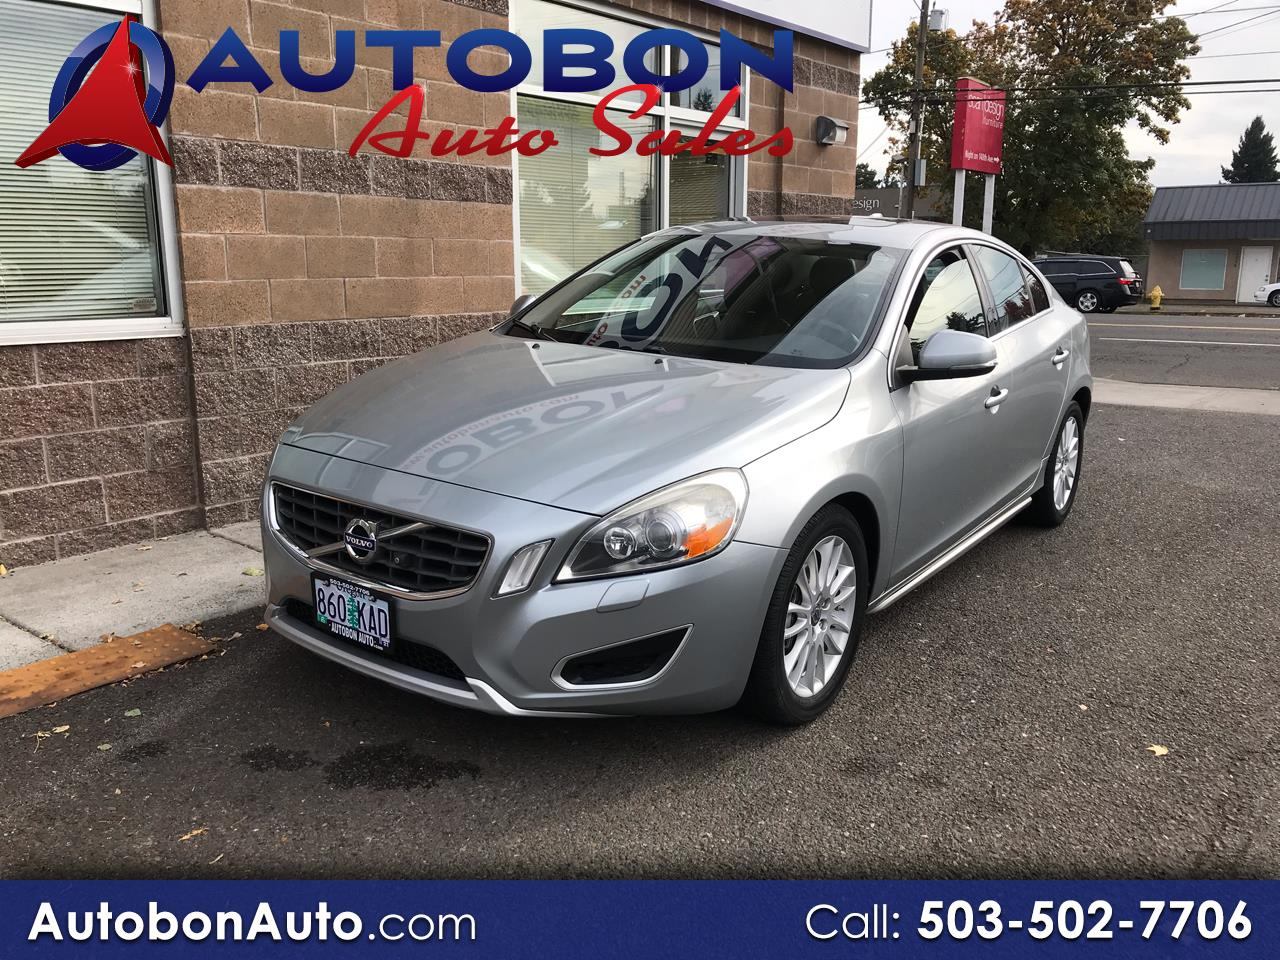 Volvo S60 4dr Sdn T6 AWD 2011